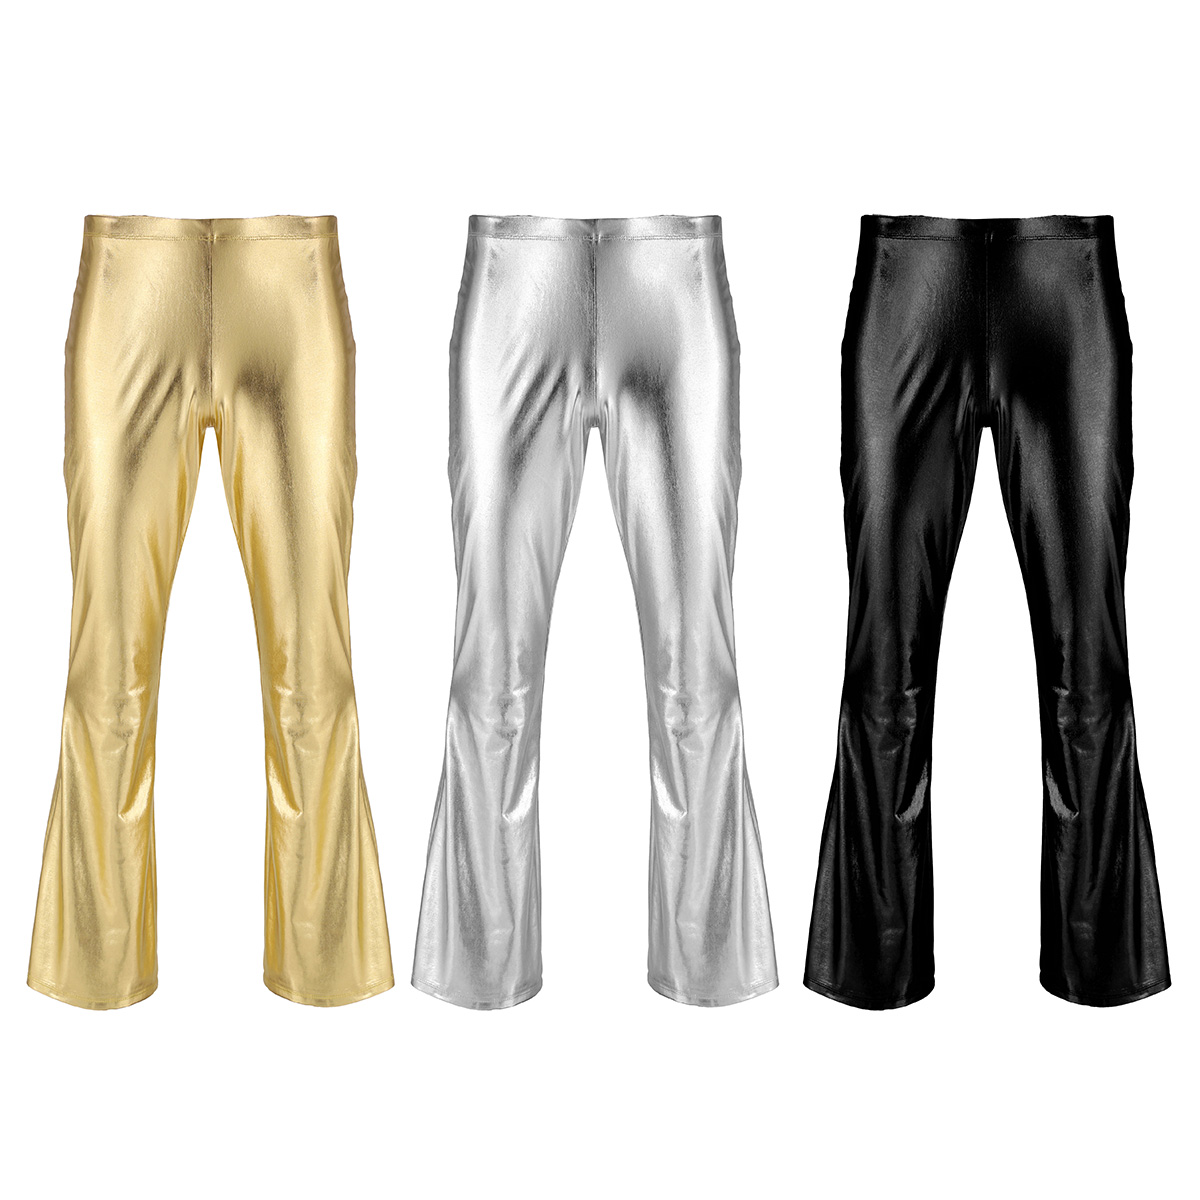 Adult Mens Moto Punk Style Party Pants Shiny Metallic Disco Pants with Bell Bottom Flared Long Pants Dude Costume Trousers 13